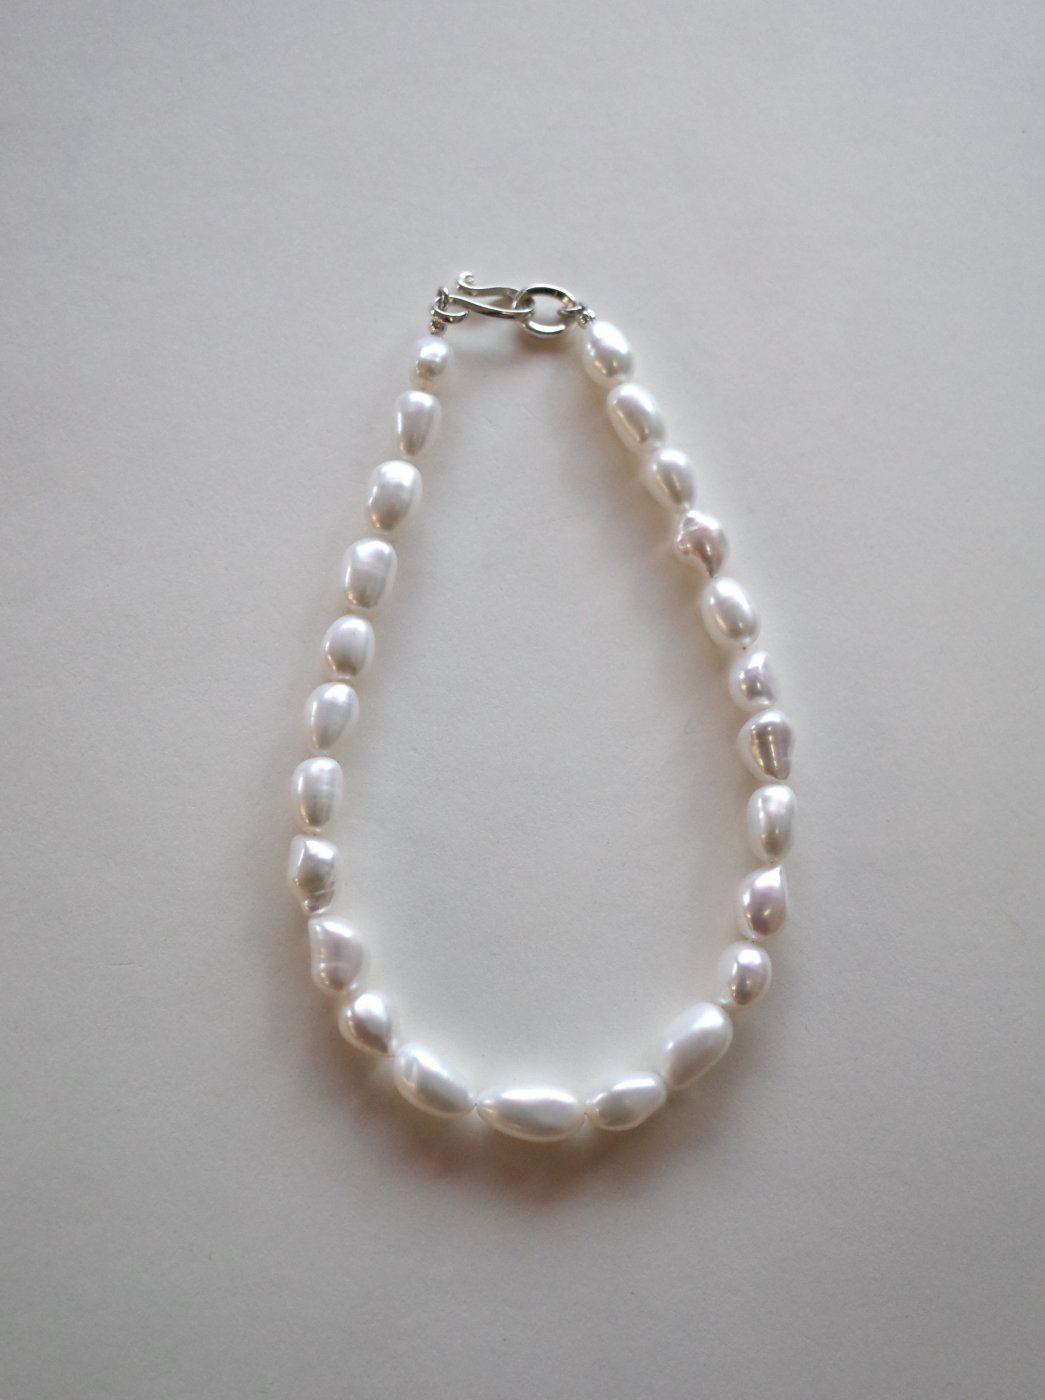 <img class='new_mark_img1' src='https://img.shop-pro.jp/img/new/icons8.gif' style='border:none;display:inline;margin:0px;padding:0px;width:auto;' />R.ALAGAN -SHORT PEARL NECKLACE